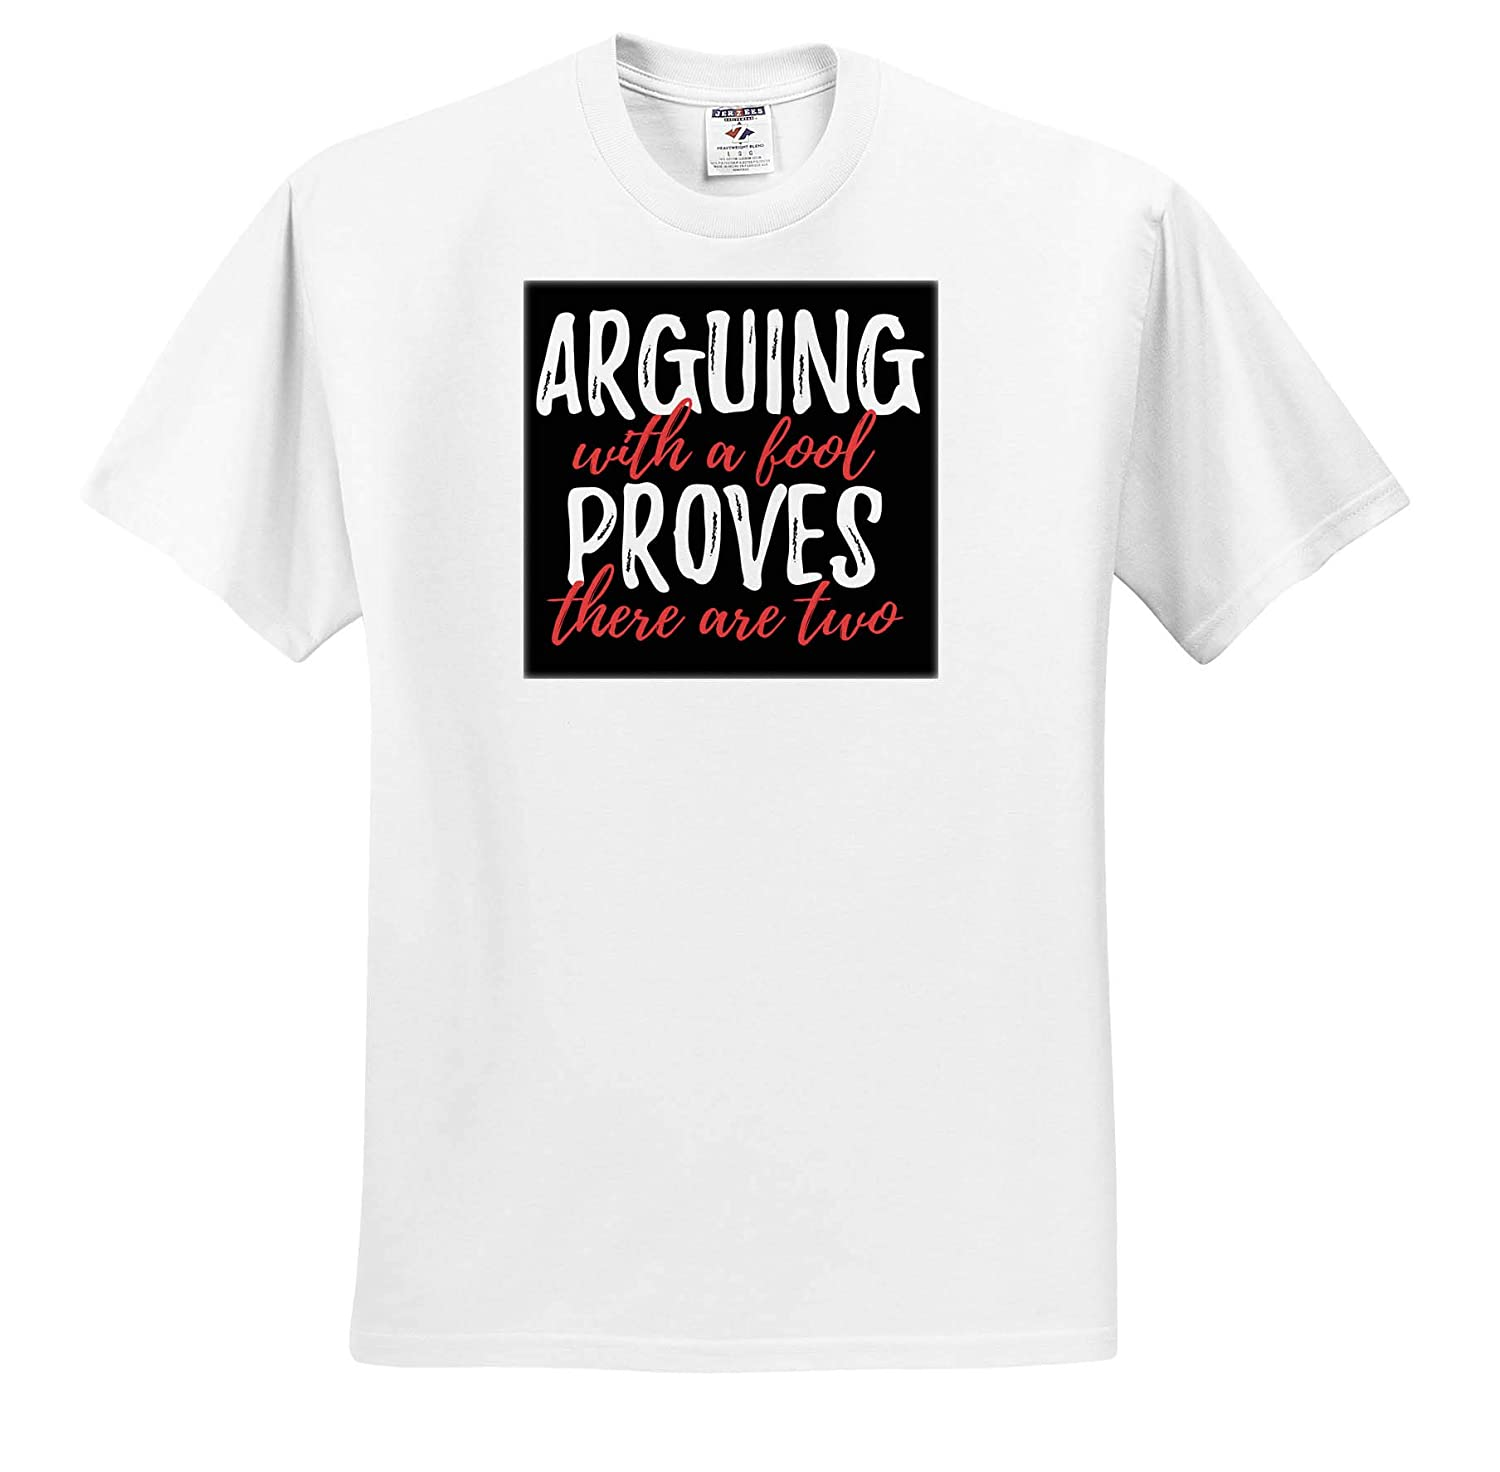 Quotes and Sayings Adult T-Shirt XL 3dRose Anne Marie Baugh ts/_319260 Arguing with A Fool Proves There are Two